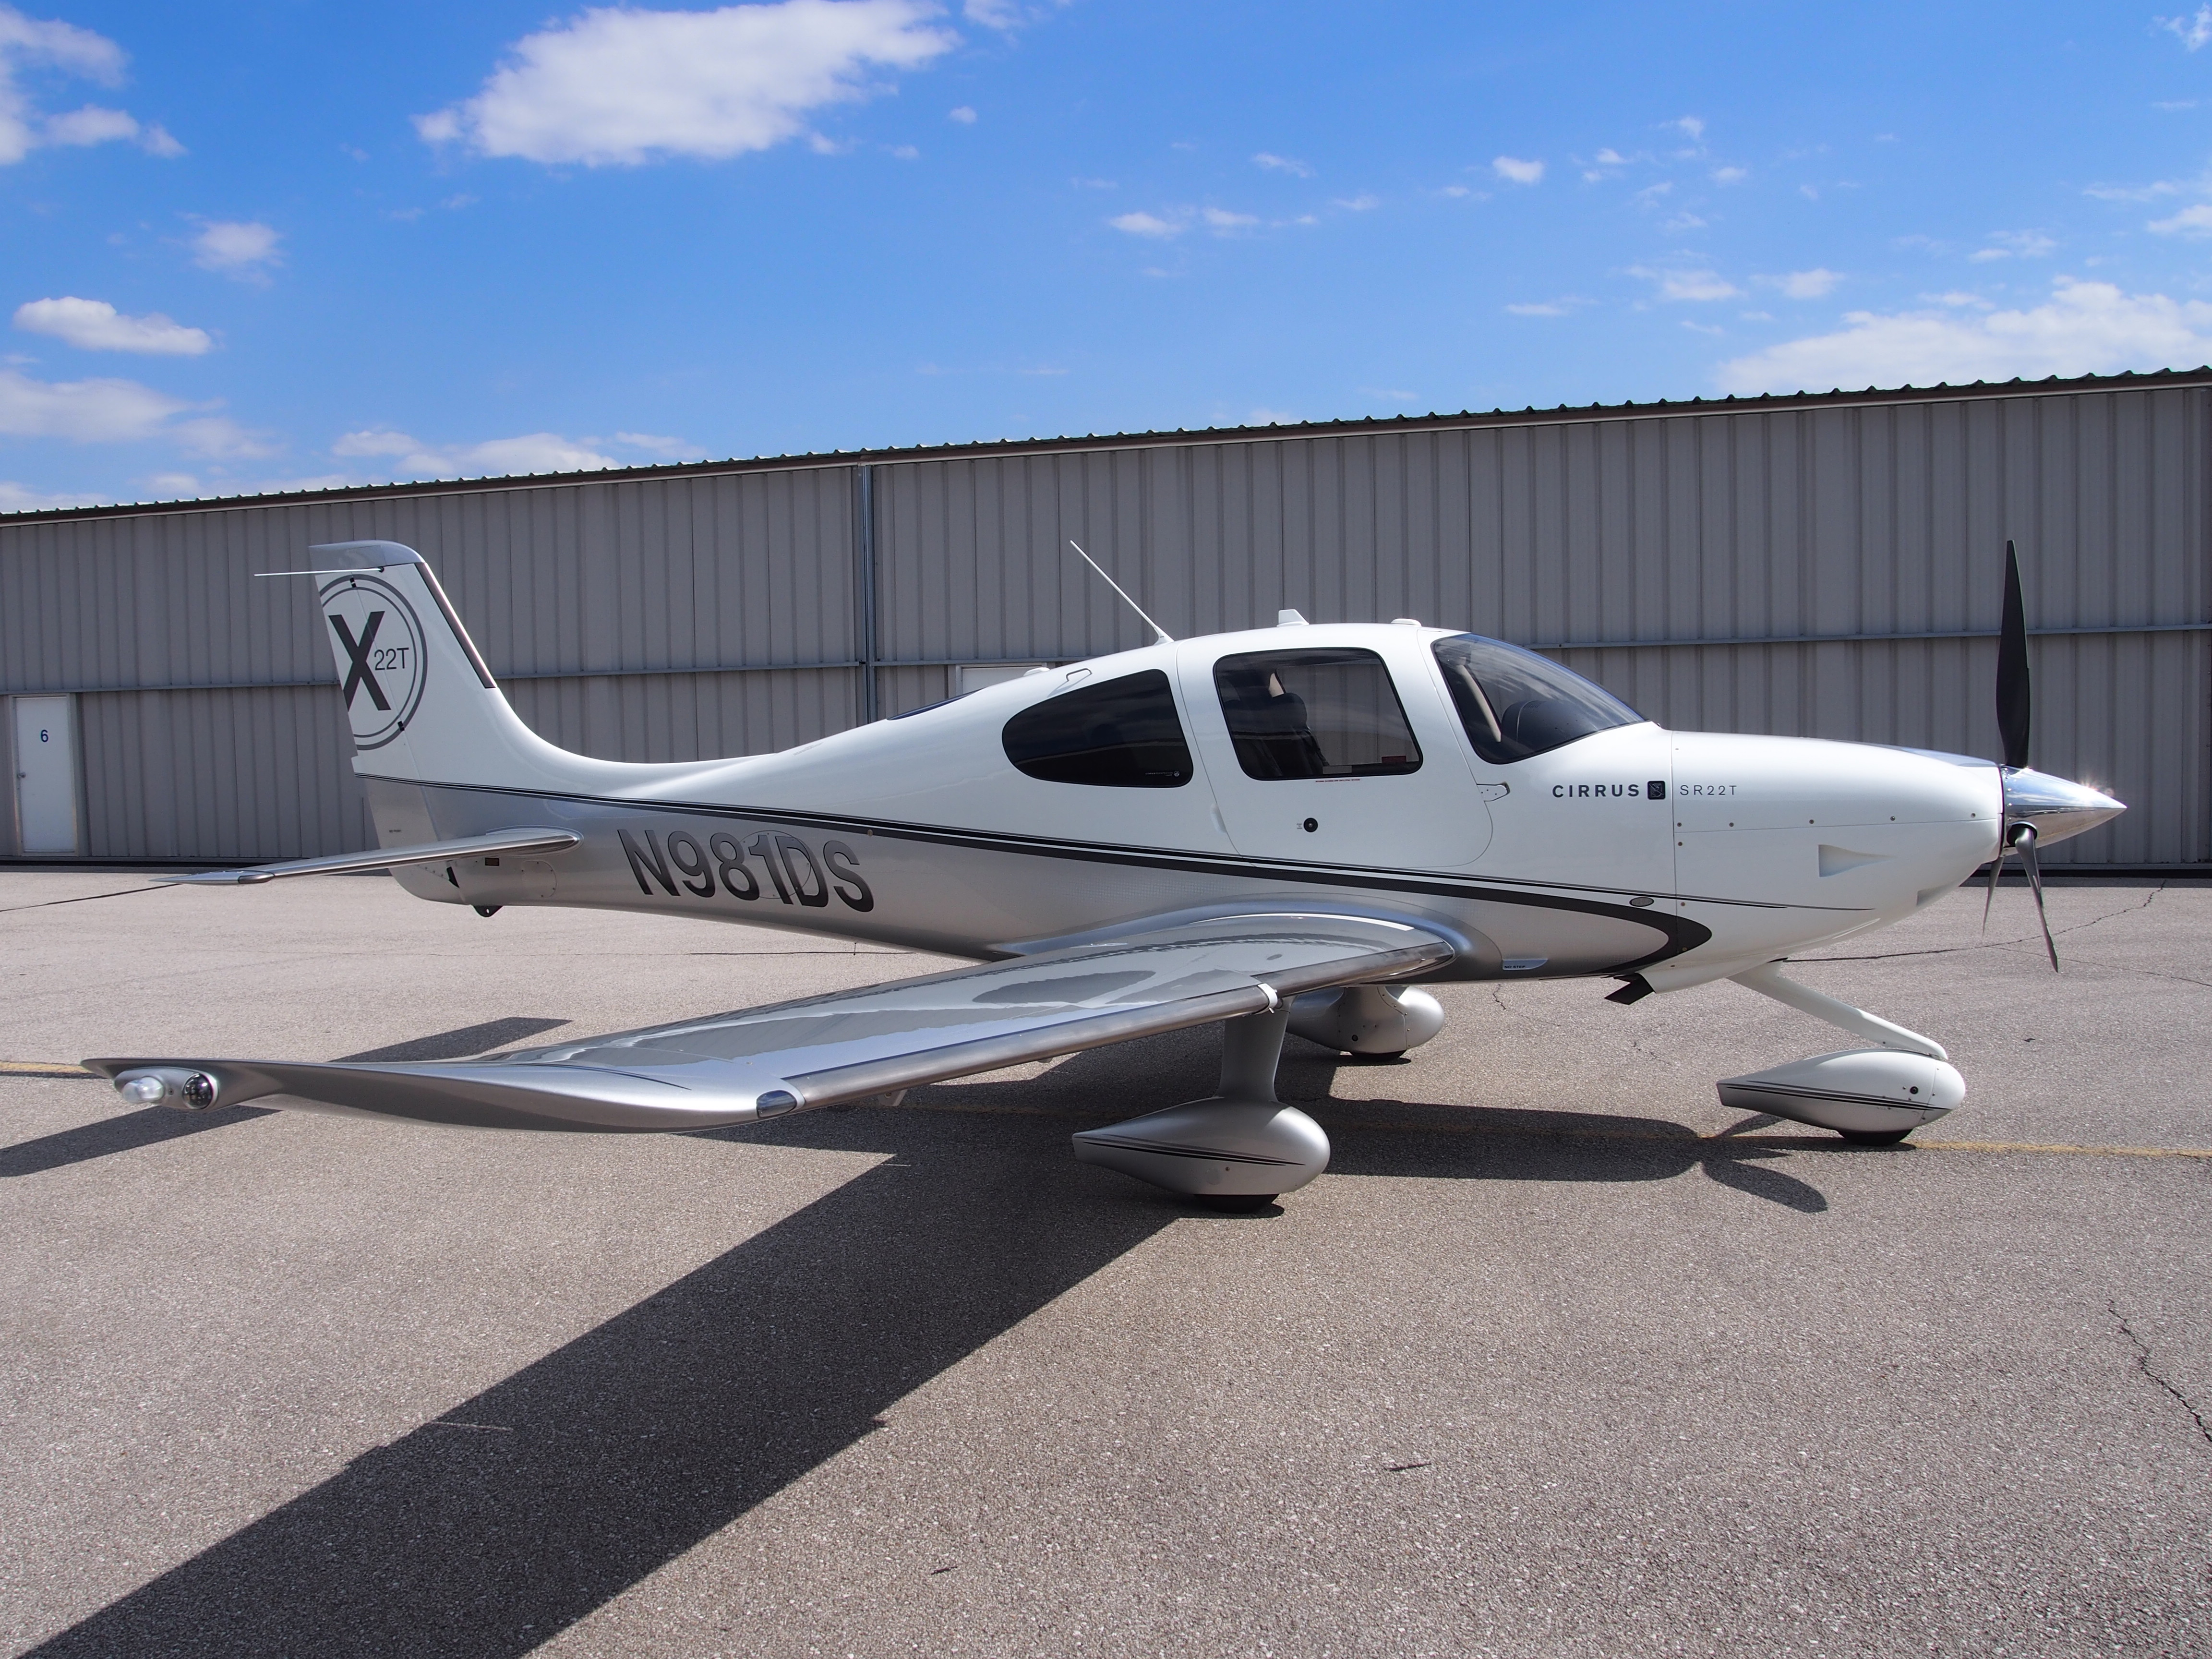 CIRRUS SR22G5 TURBO Aircraft For Sale  22 Listings